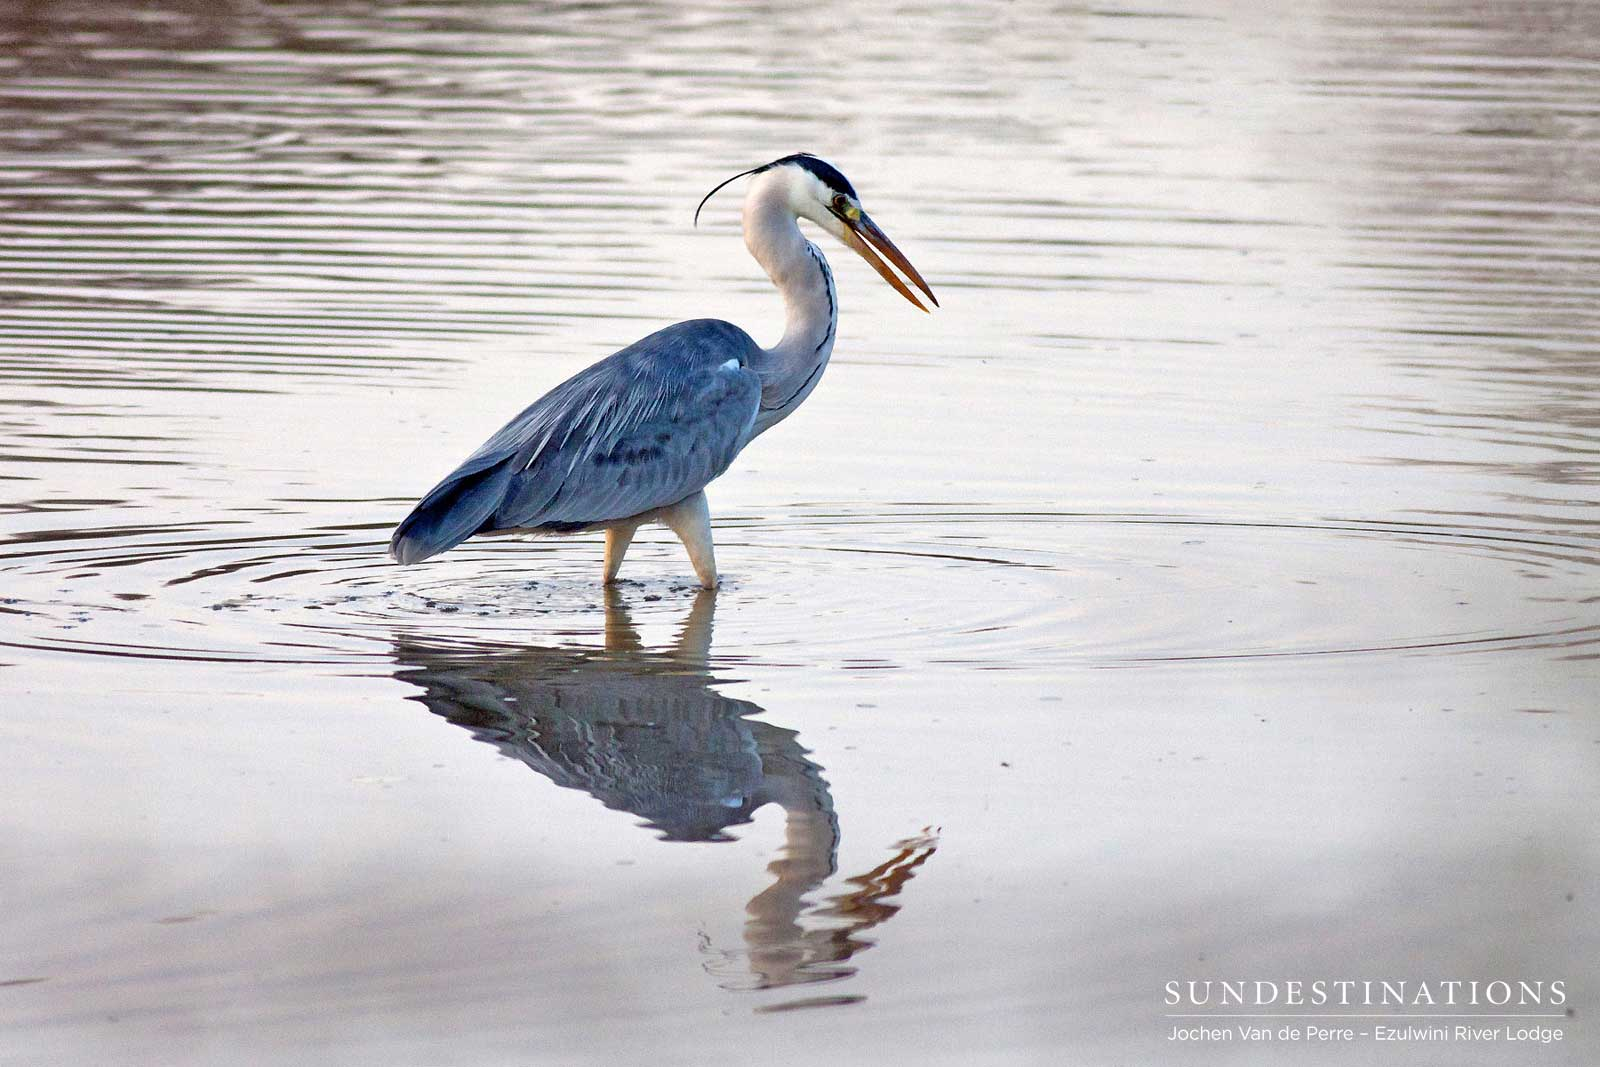 A grey heron contemplates its handsome reflection in the rippled surface of the water